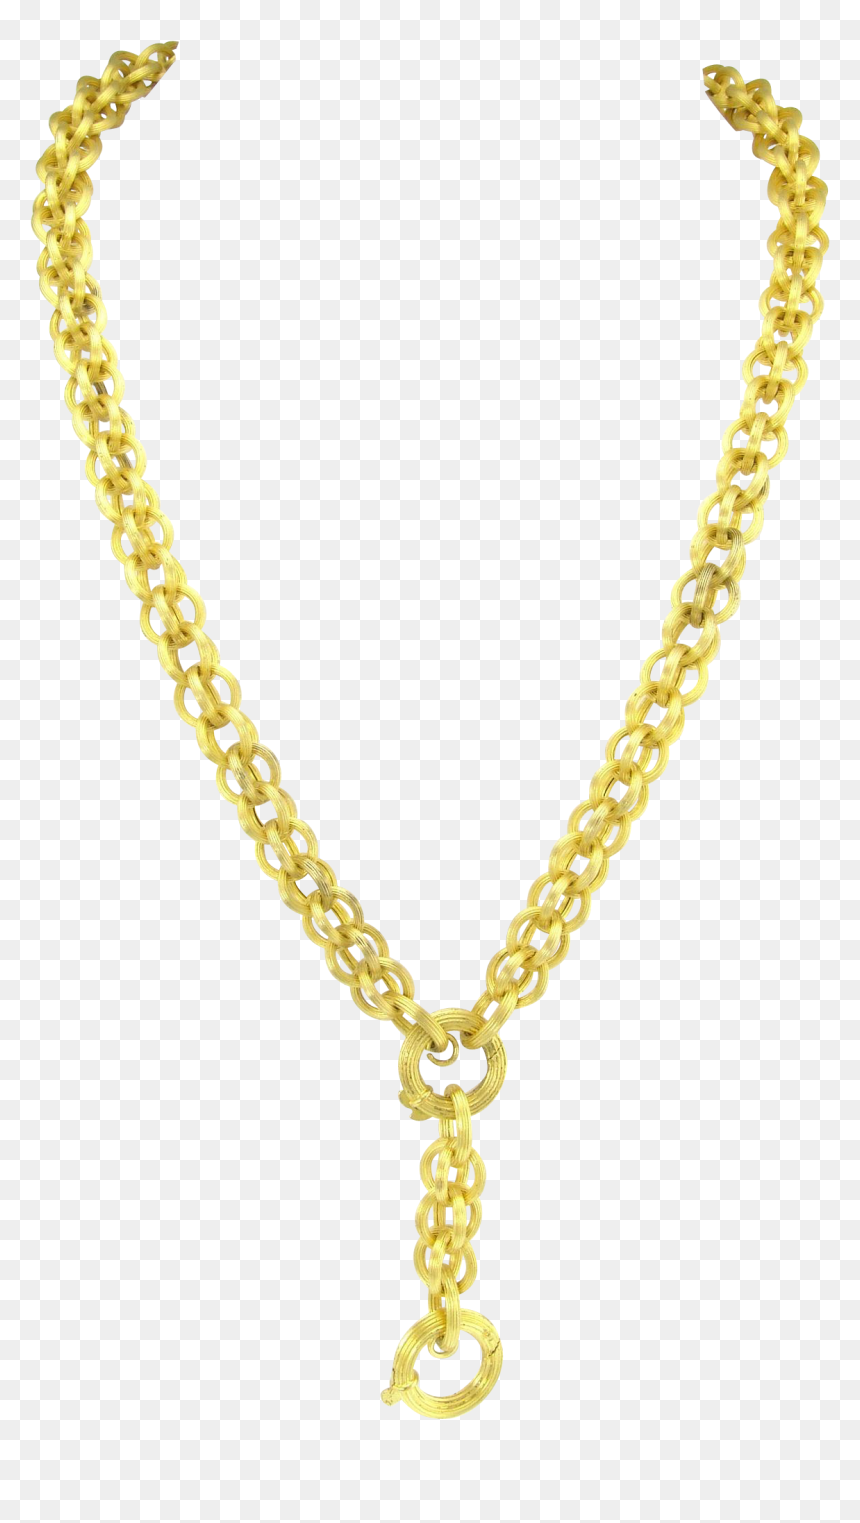 Jewelry Clipart Gold Chain Picsart Gold Chain Png Transparent Png Is Pure And Creative Png Image Uploaded By Designer To Gold Chain Design Gold Chains Gold